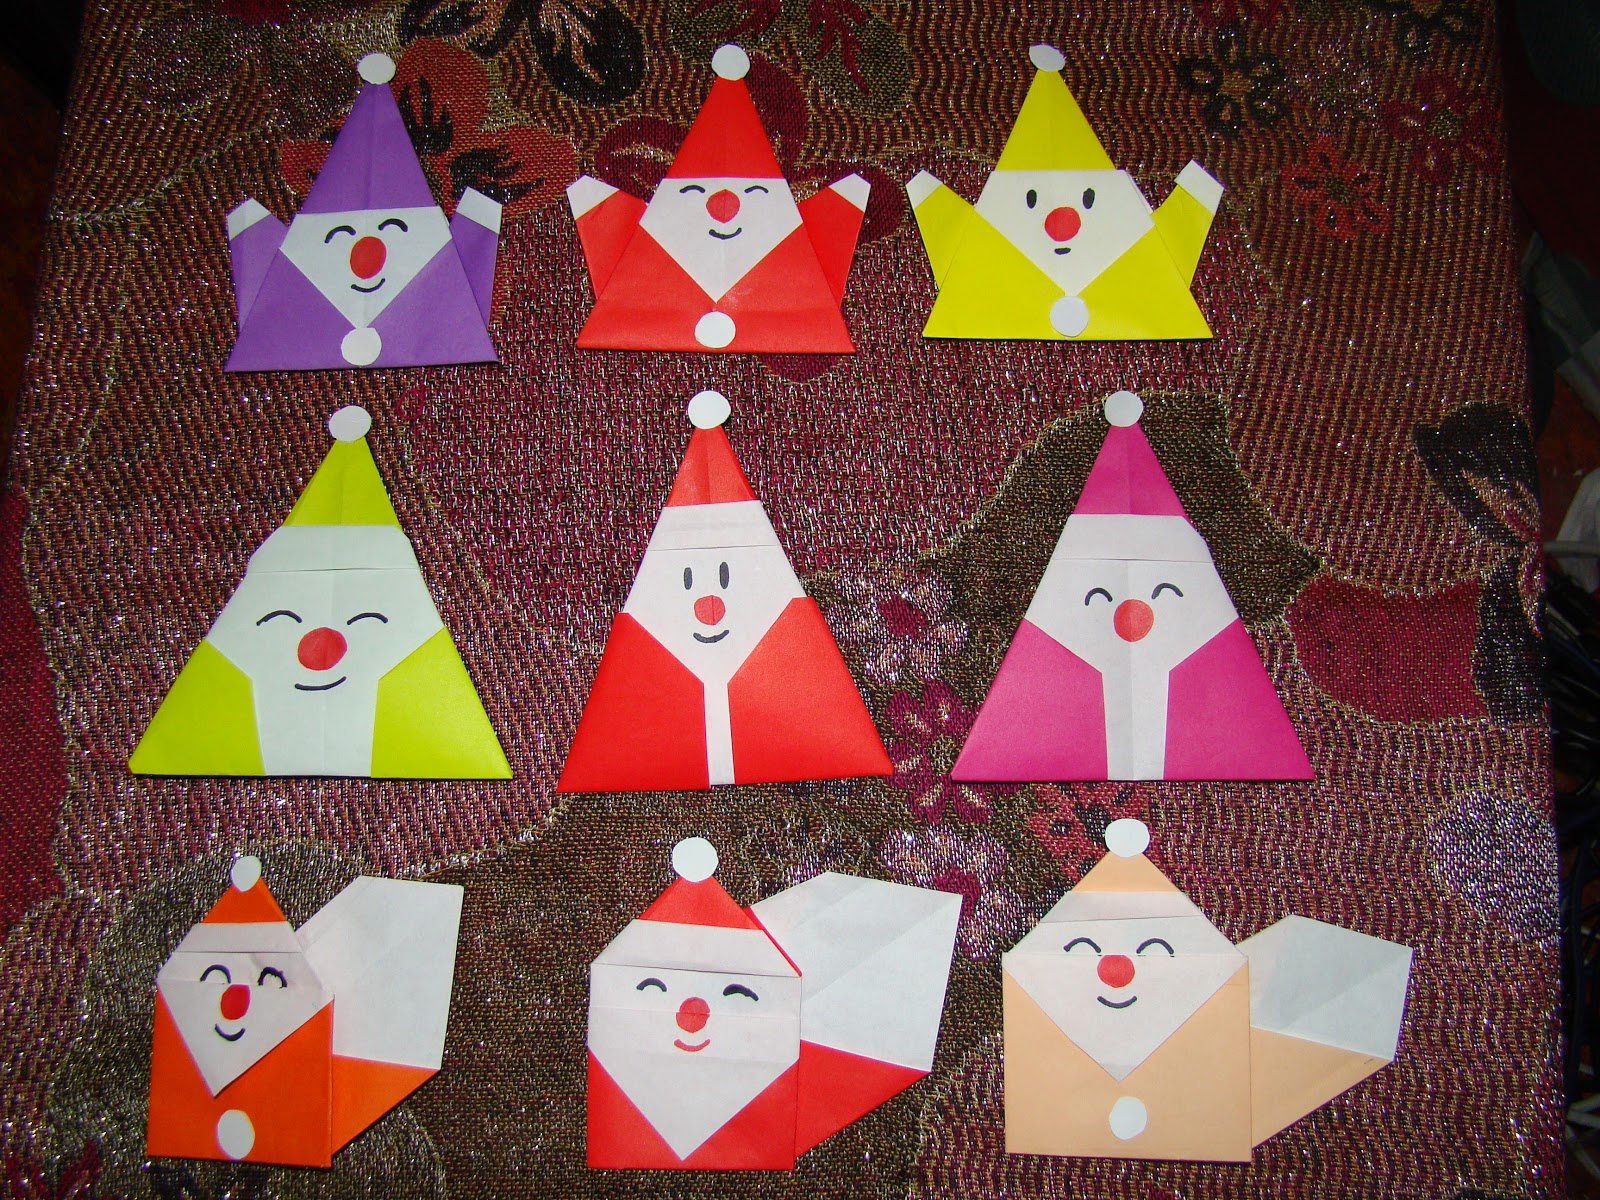 Origami maniacs three different kinds of origami santa claus for Make origami santa claus